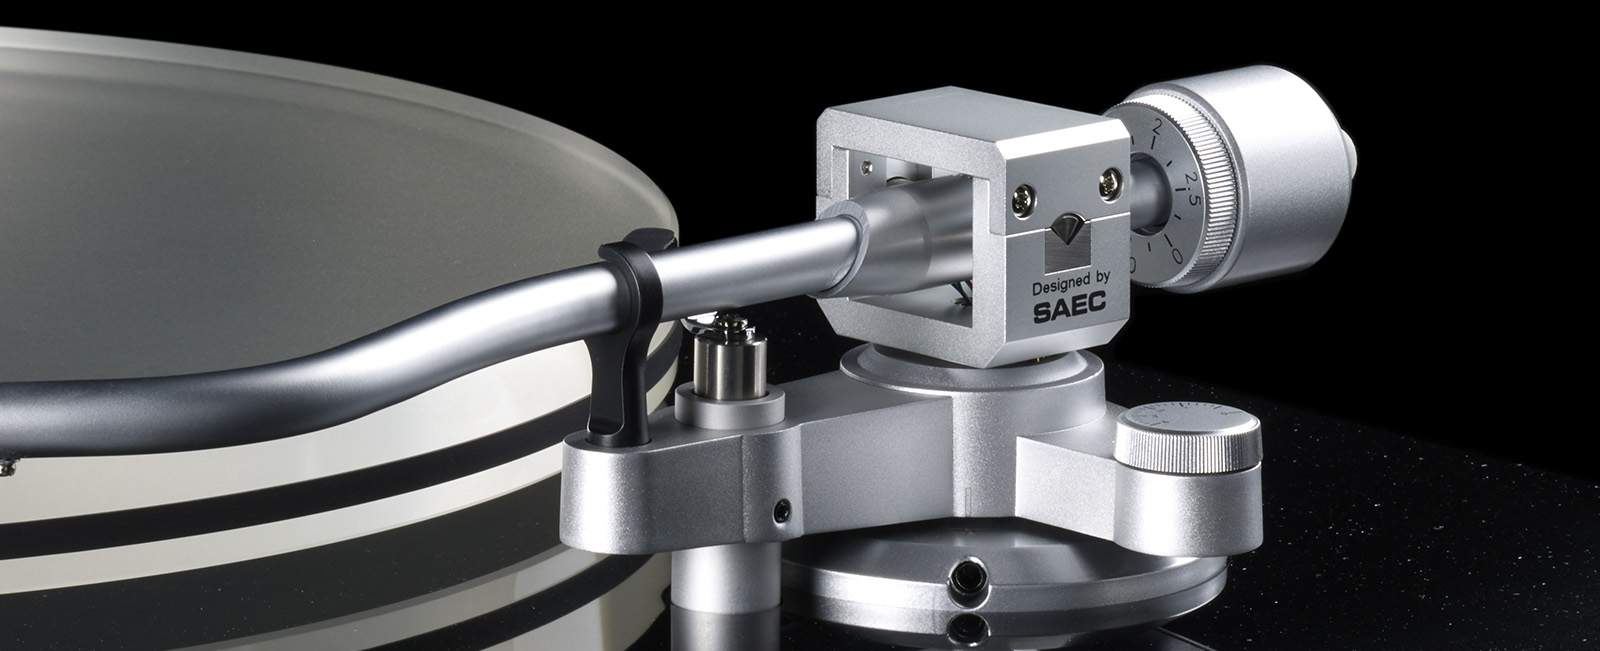 TEAC tn-5bb_tonearm_base